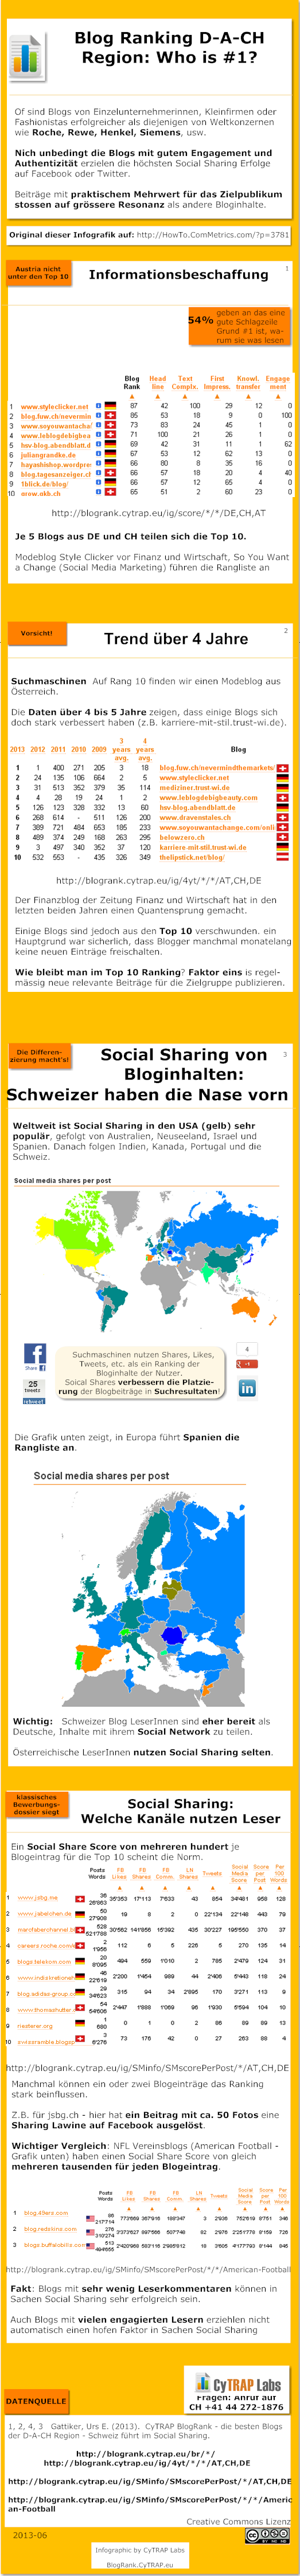 Infografik: CyTRAP BlogRank - die TOP 10 Blogs aus der D-A-CH Region  http://HowTo.ComMetrics.com/?p=118